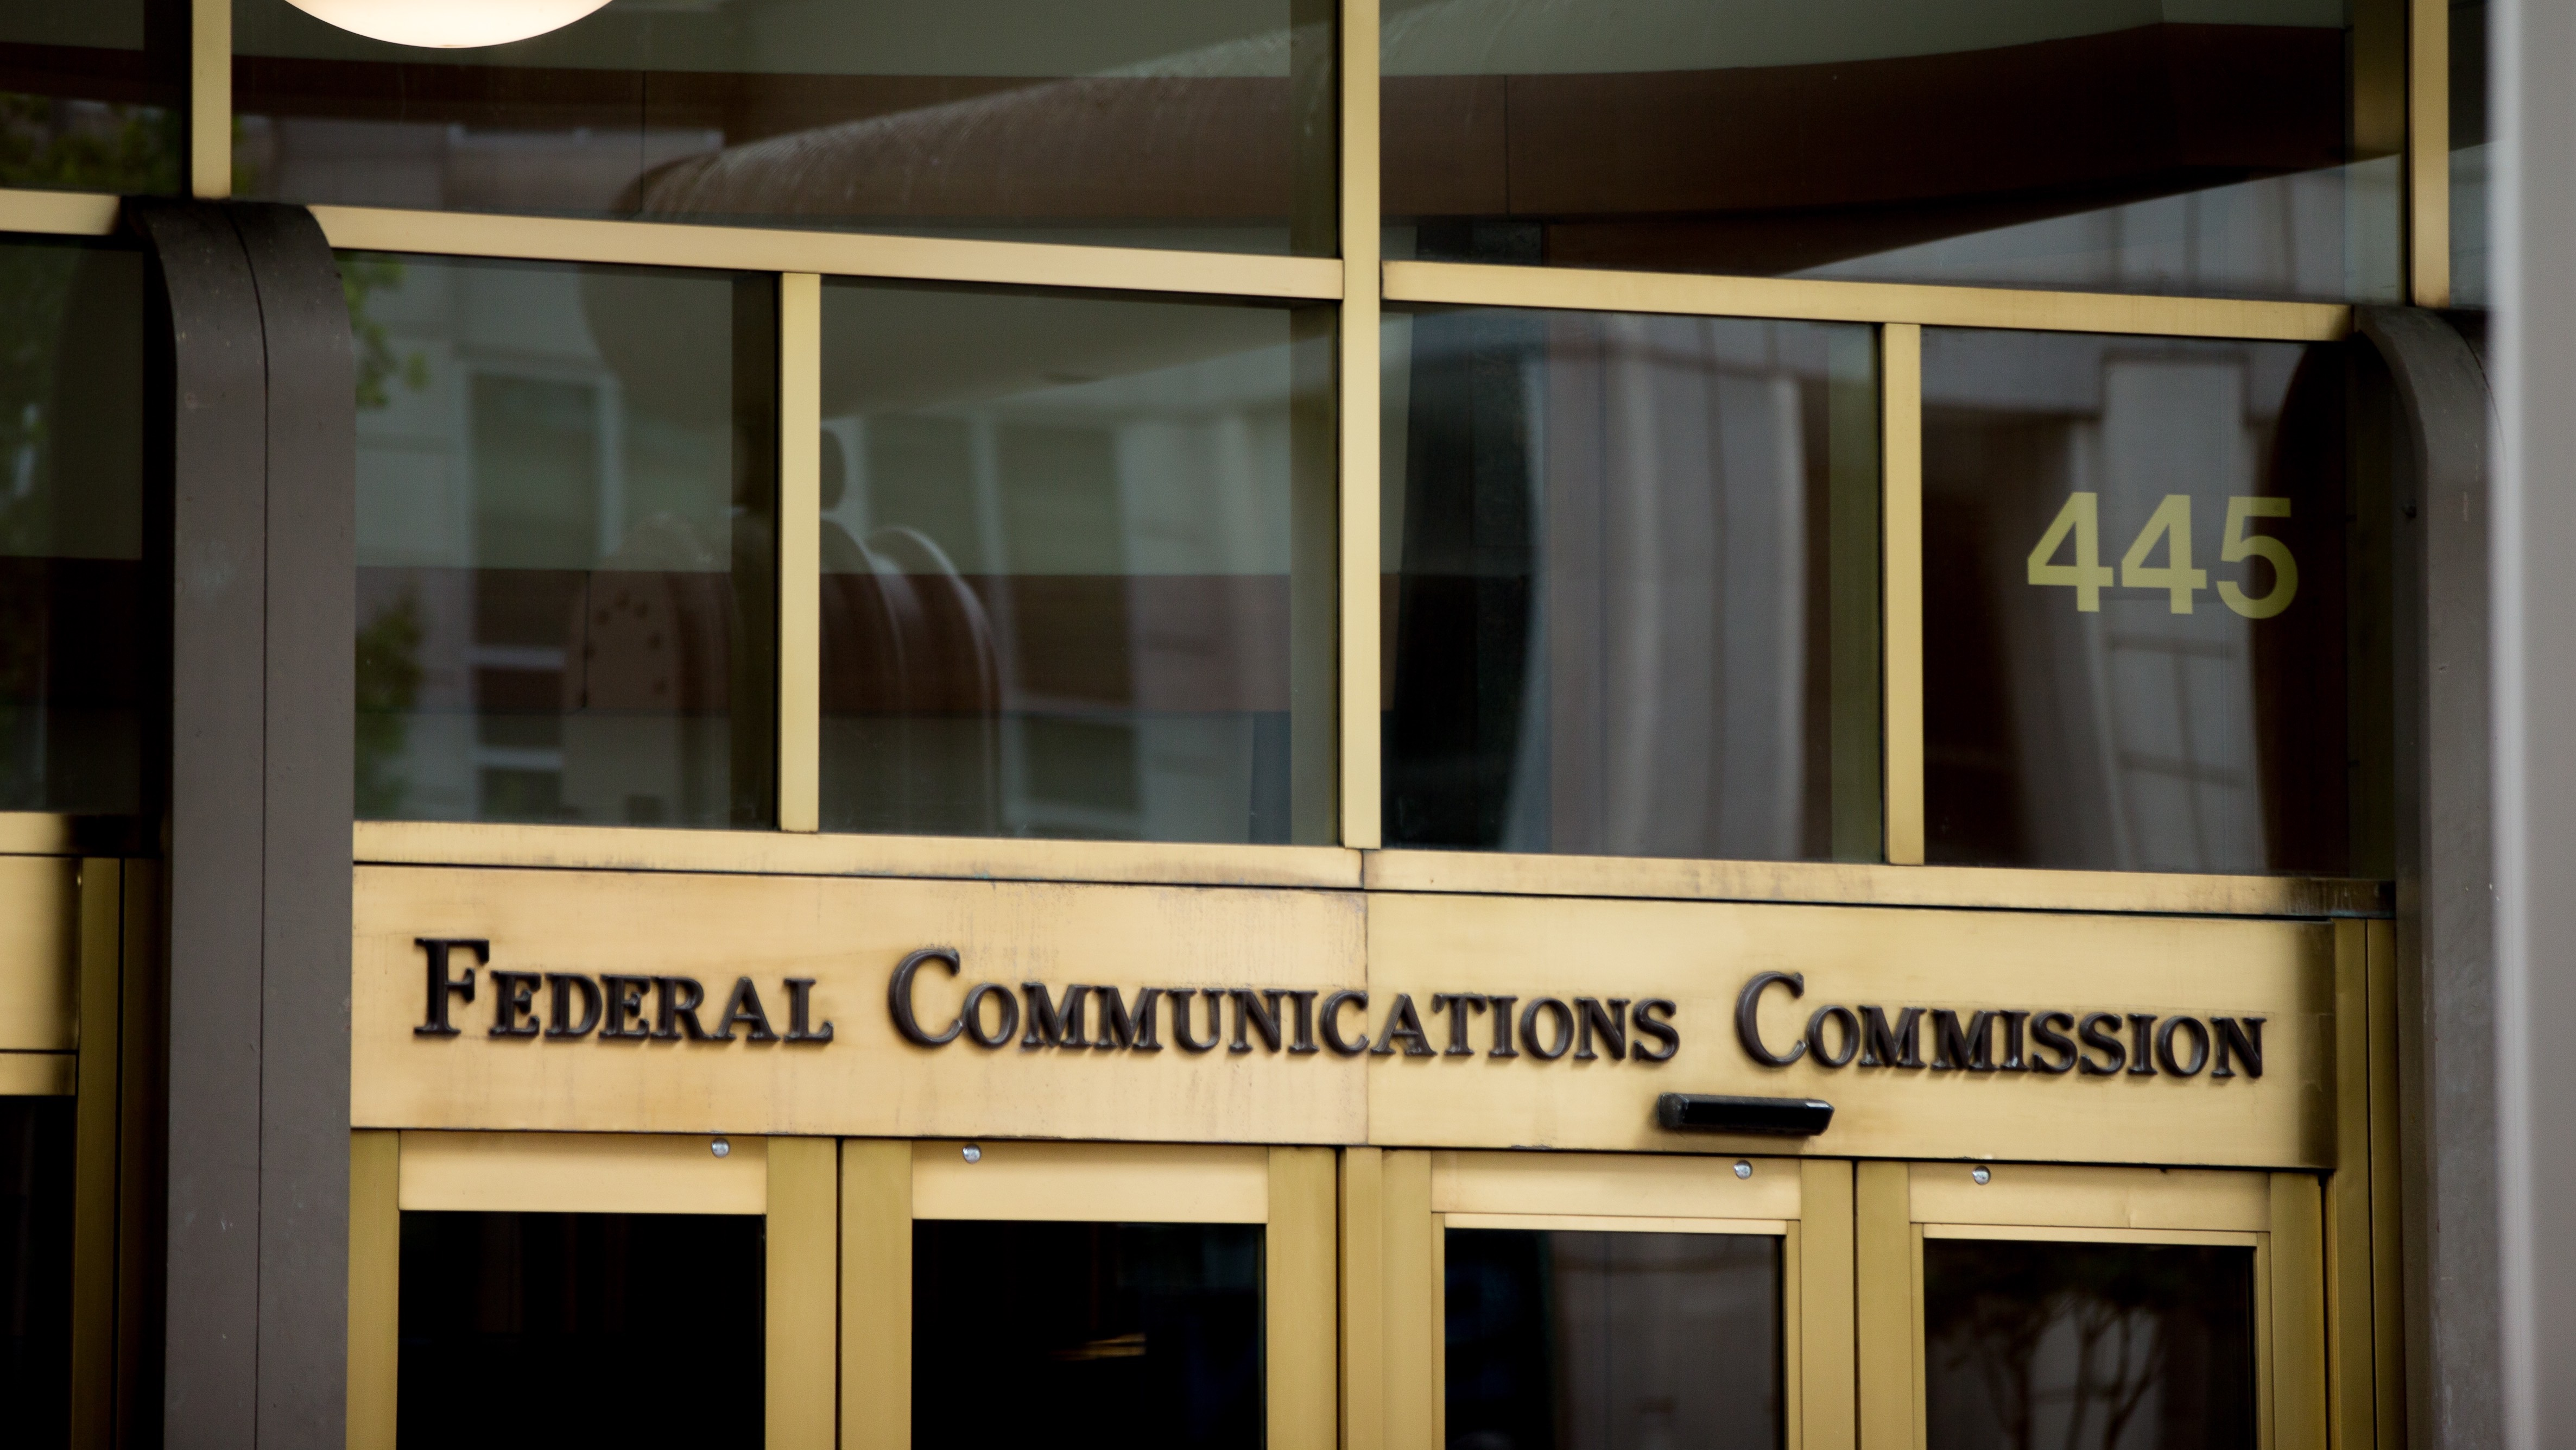 FILE - This June 19, 2015, file photo, shows the Federal Communications Commission building in Washington. Cellphone and broadband providers are excluding some video from data caps, meaning consumers have more data available for other apps and services. But the net neutrality rules from the Federal Communications Commission don't ban these practices, saying it could benefit consumers in some cases. (AP Photo/Andrew Harnik, File)